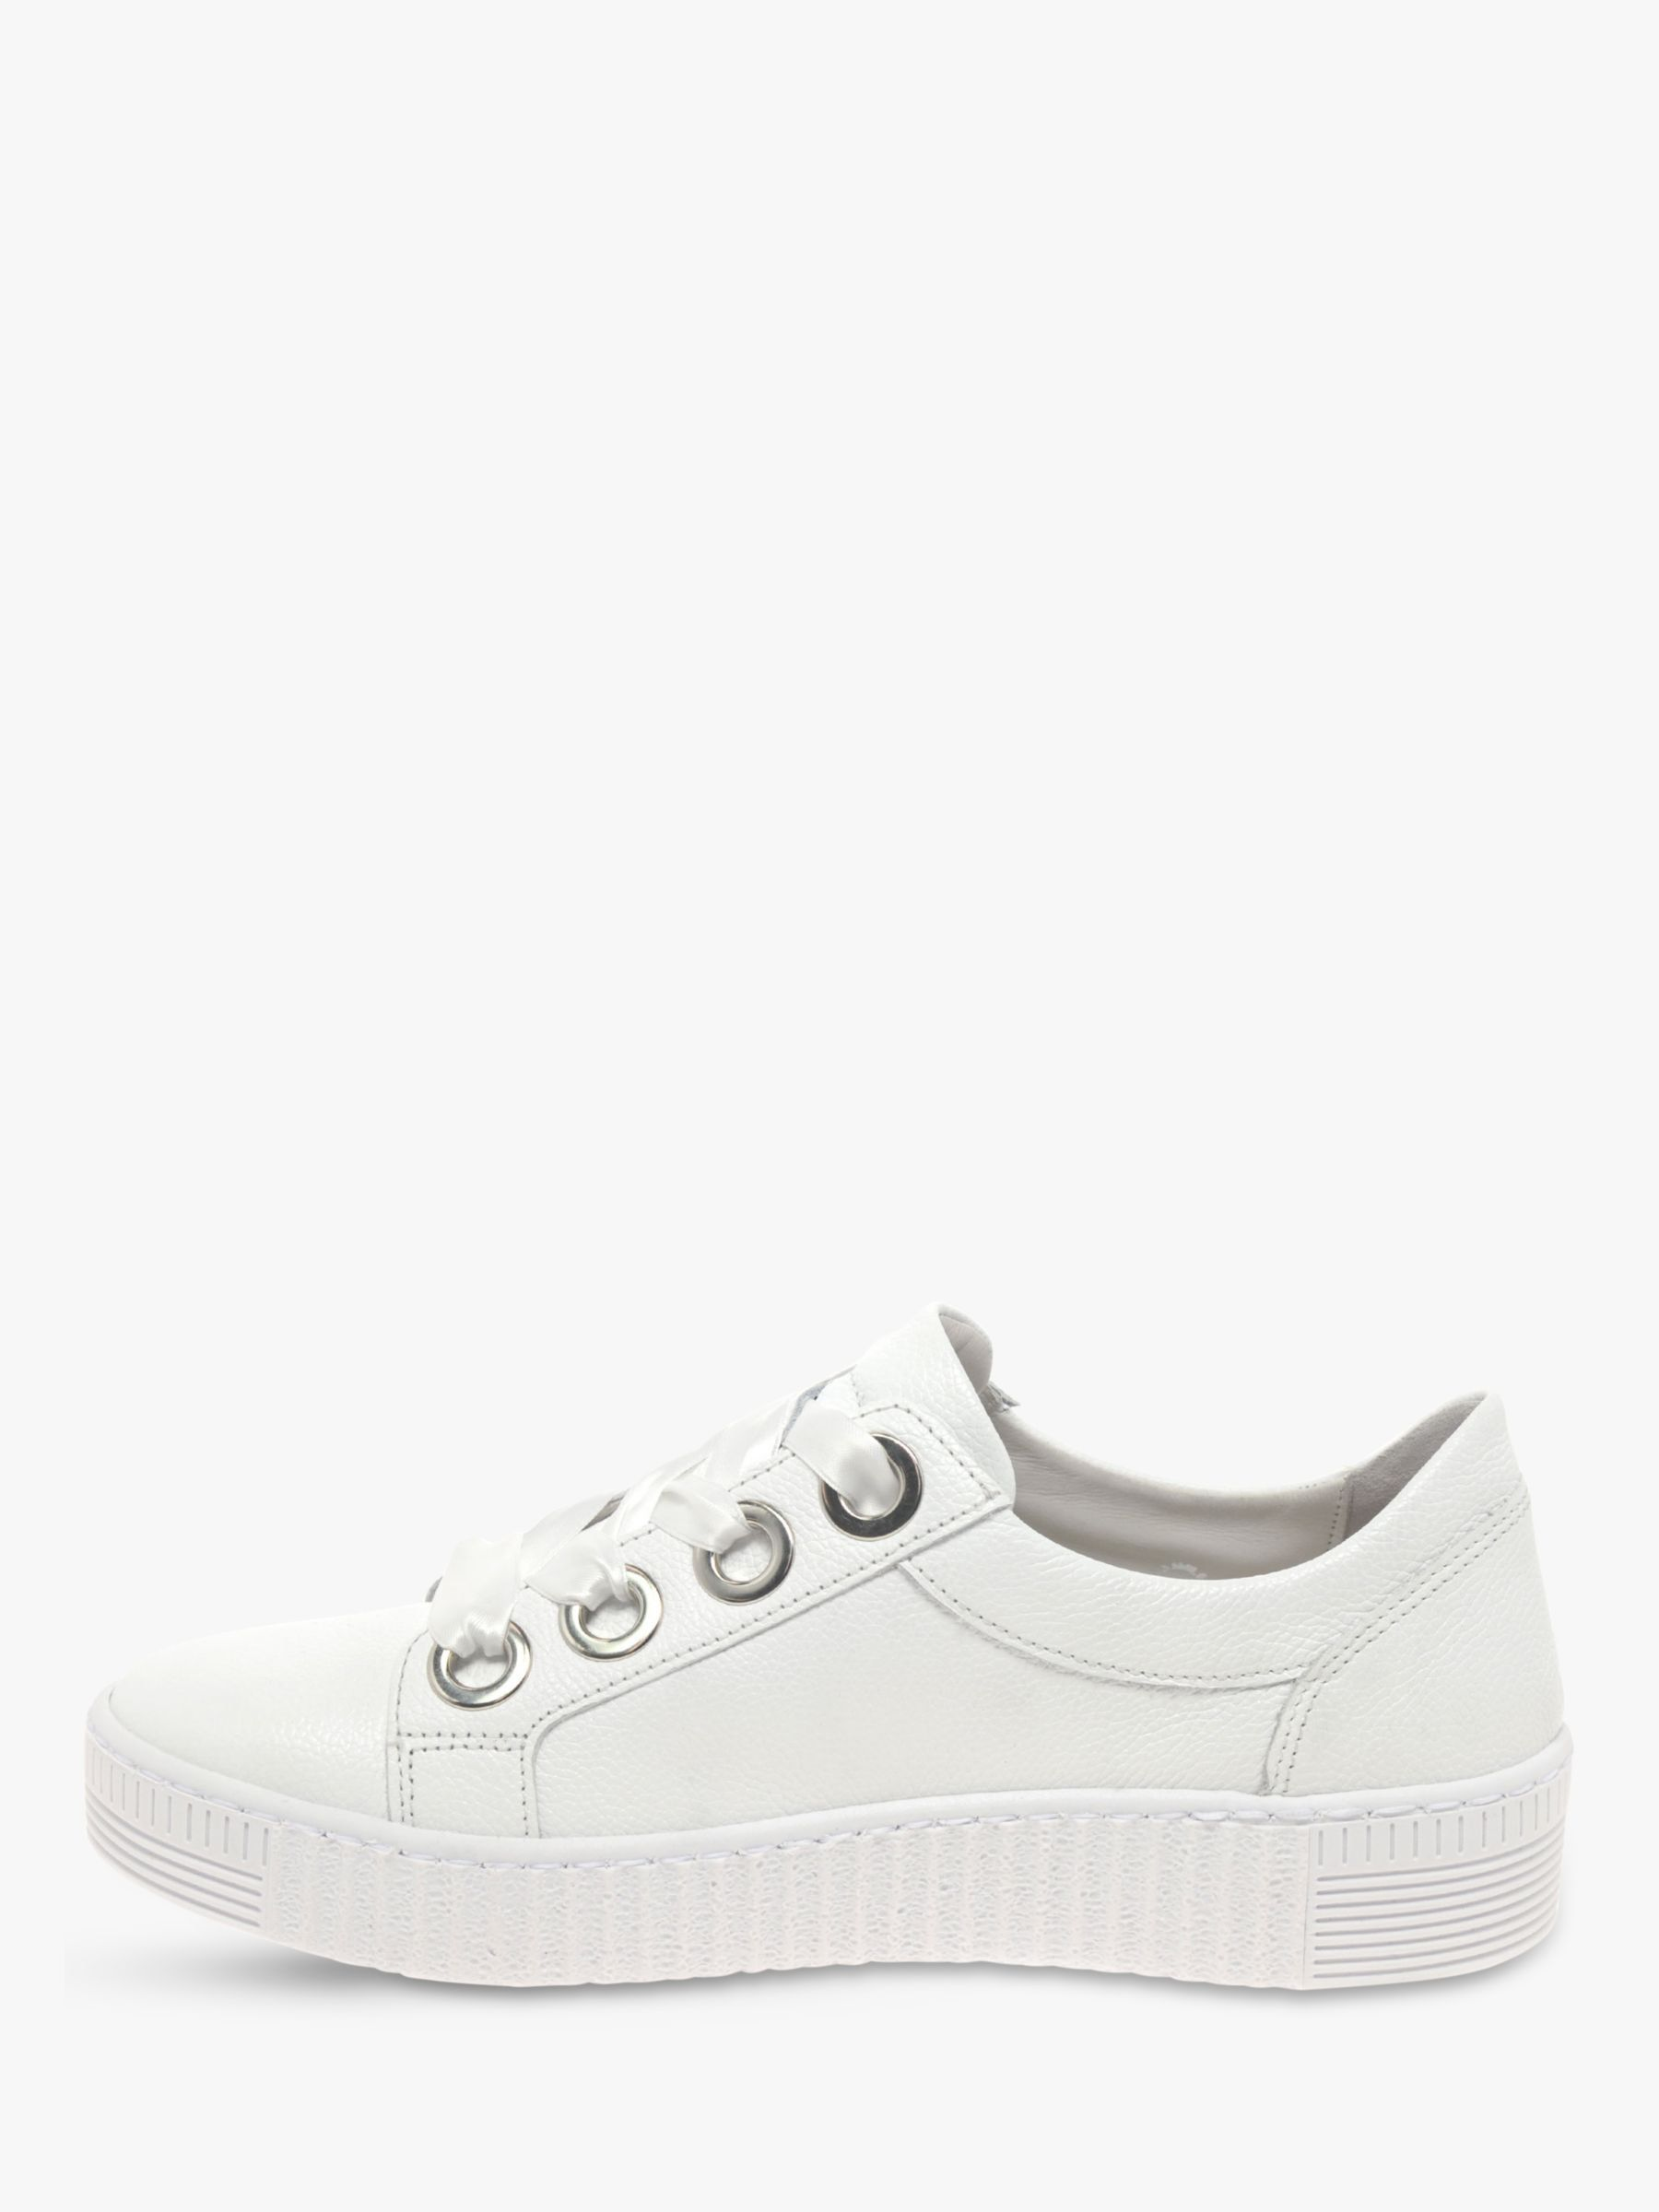 Gabor Wright Low Top Trainers, White